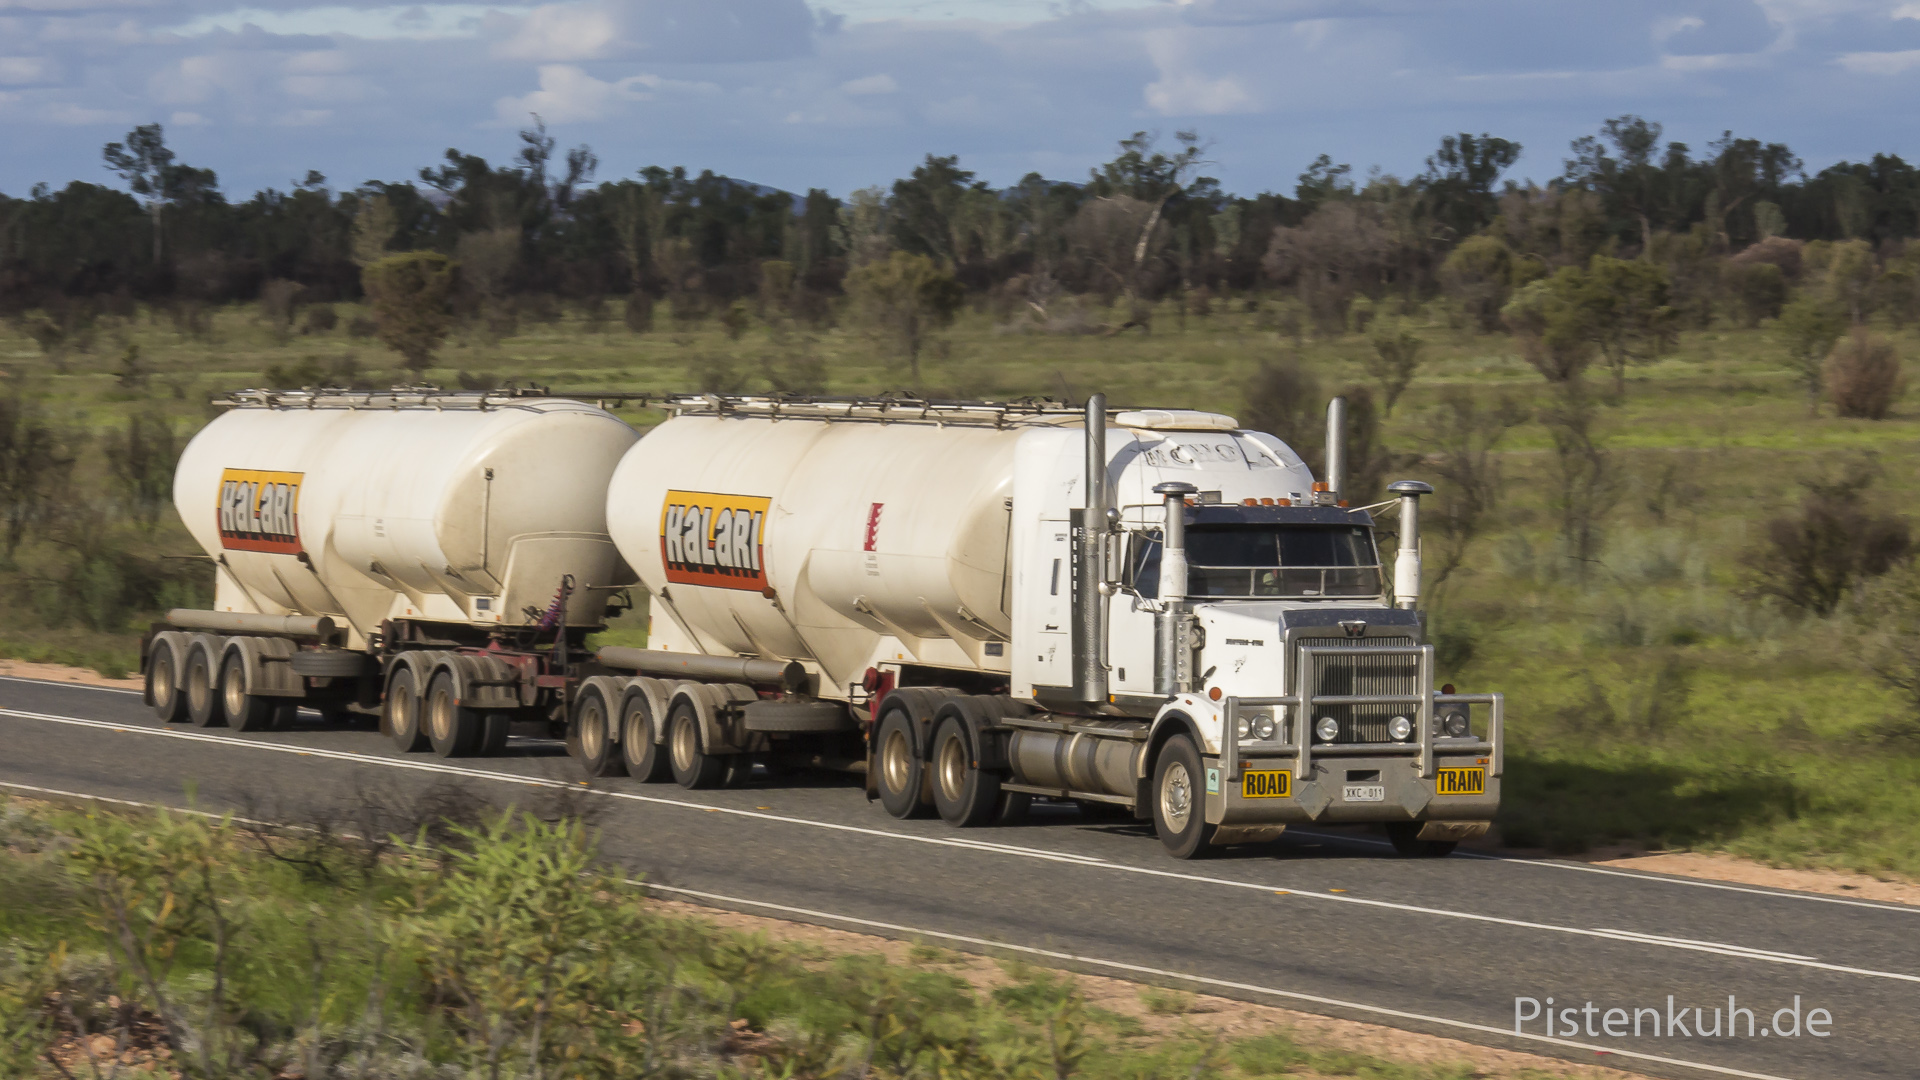 double-roadtrains-3